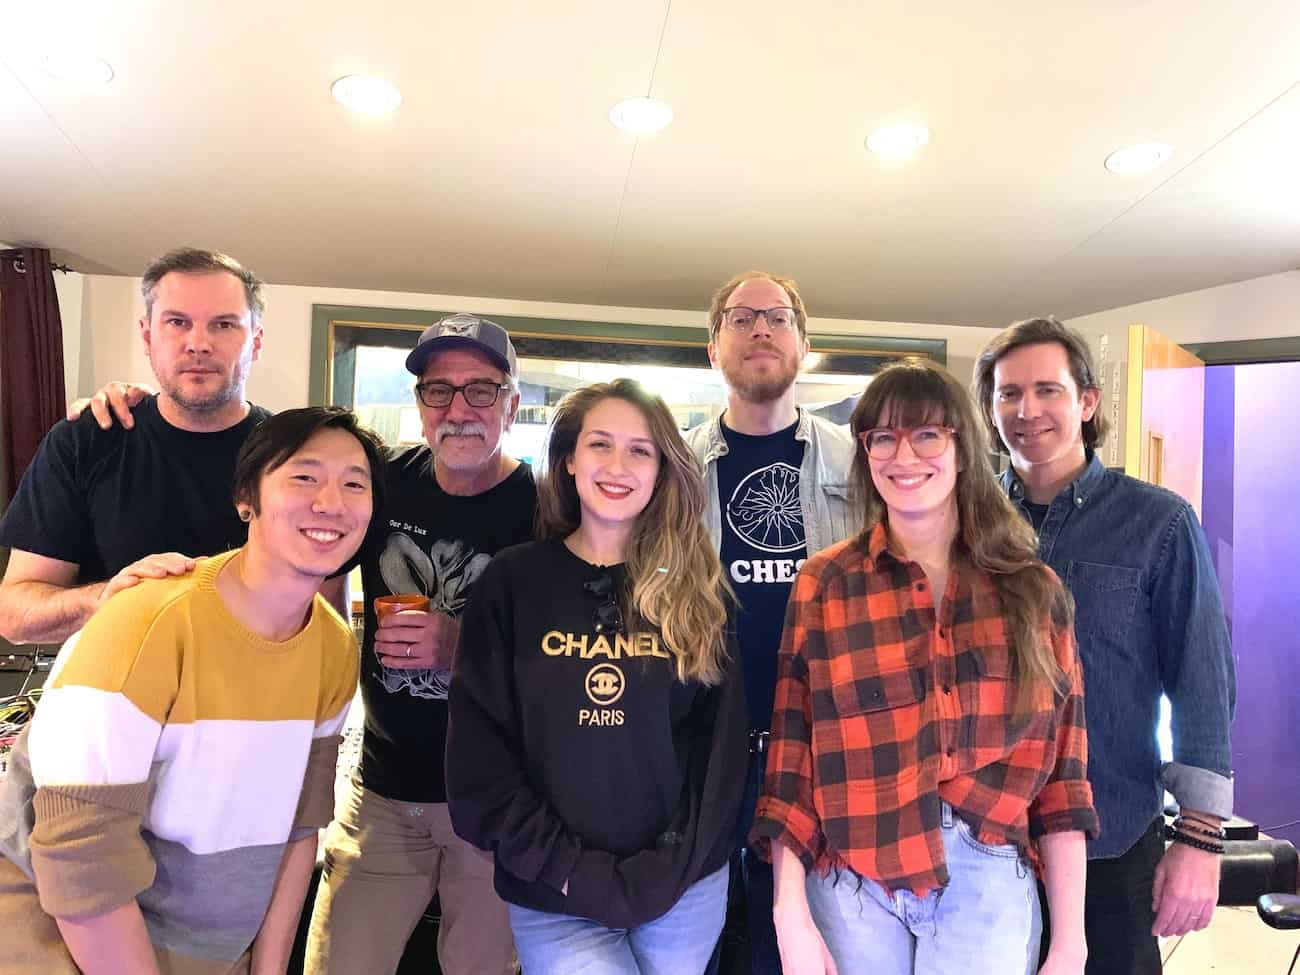 Roan Yellowthorn's studio crew, from left to right: Emil Amos, Jeremy Delaney, John Agnello, me, Andy Burton, Jesske Hume, and Shawn Strack